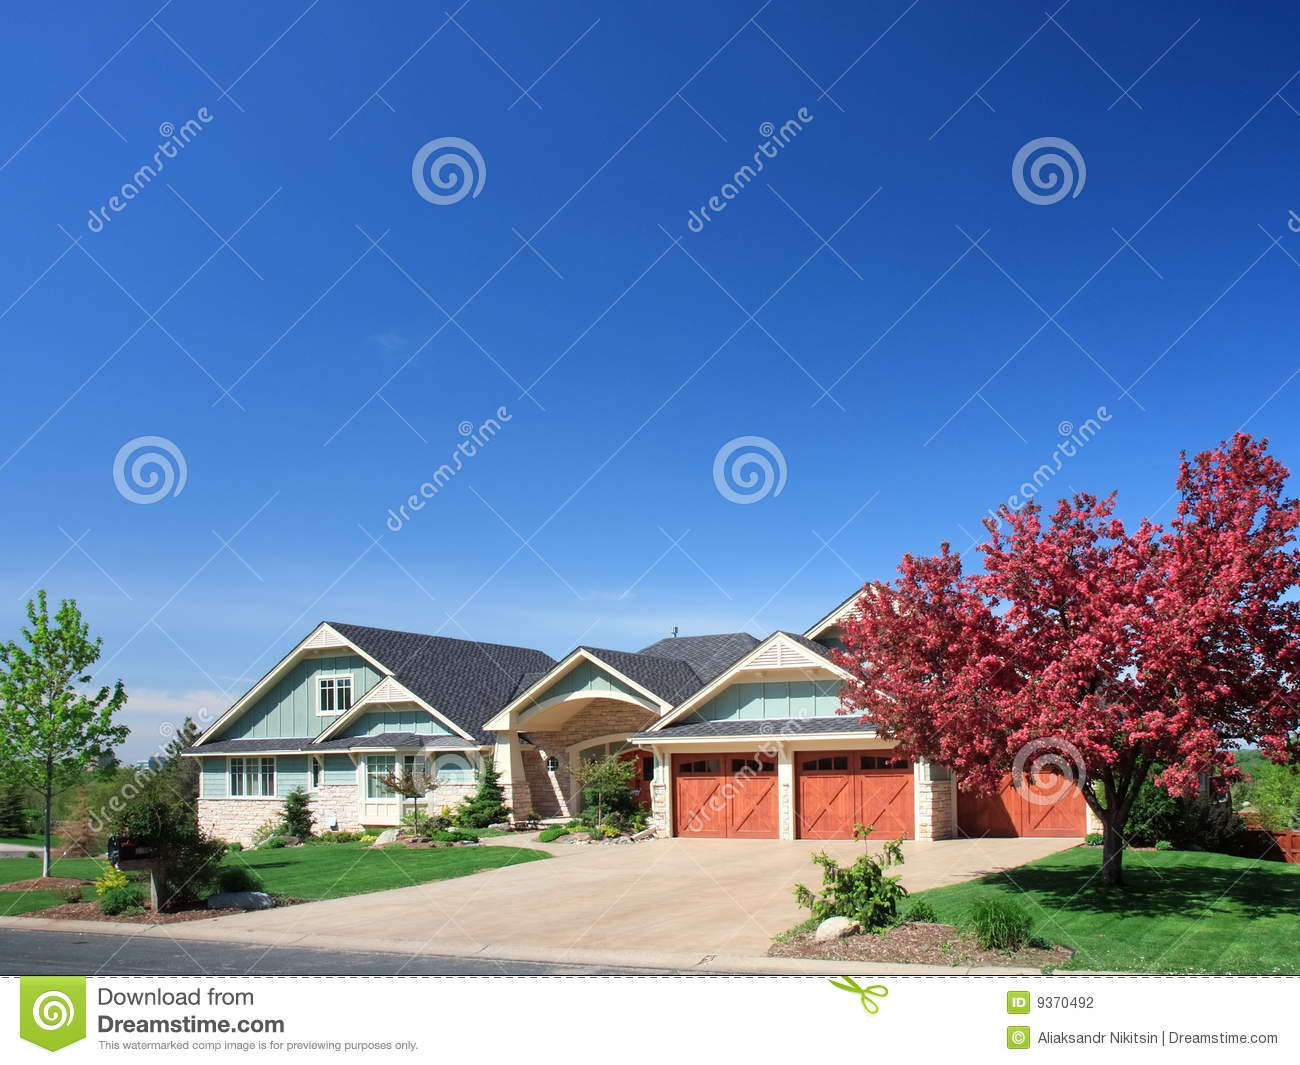 Residential House In Minneapolis Stock Photography Image